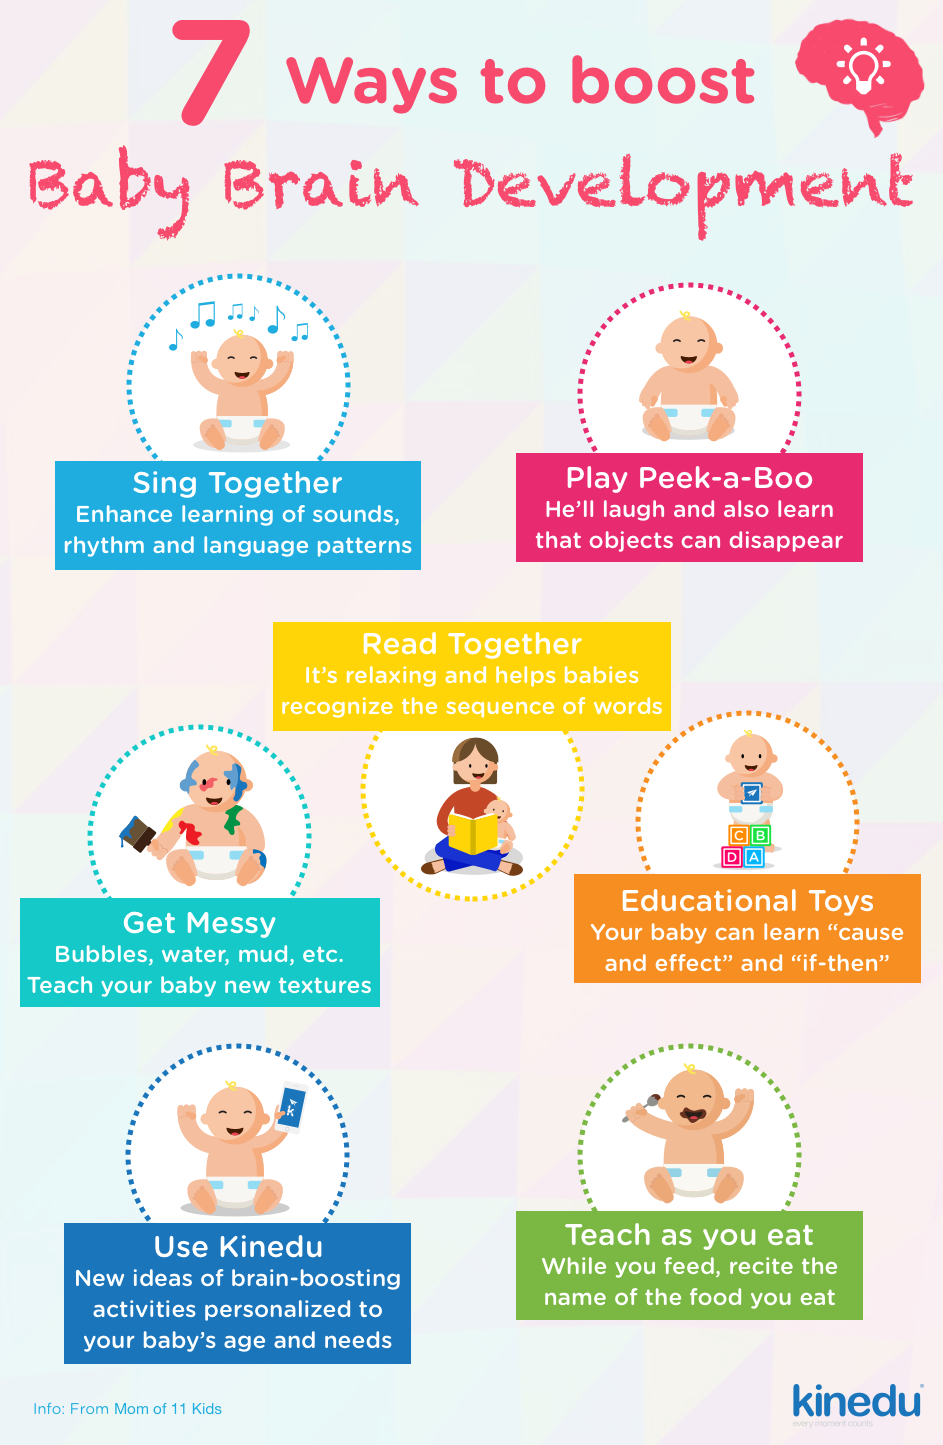 Here are 7 Ways to boost Brain Development in your baby